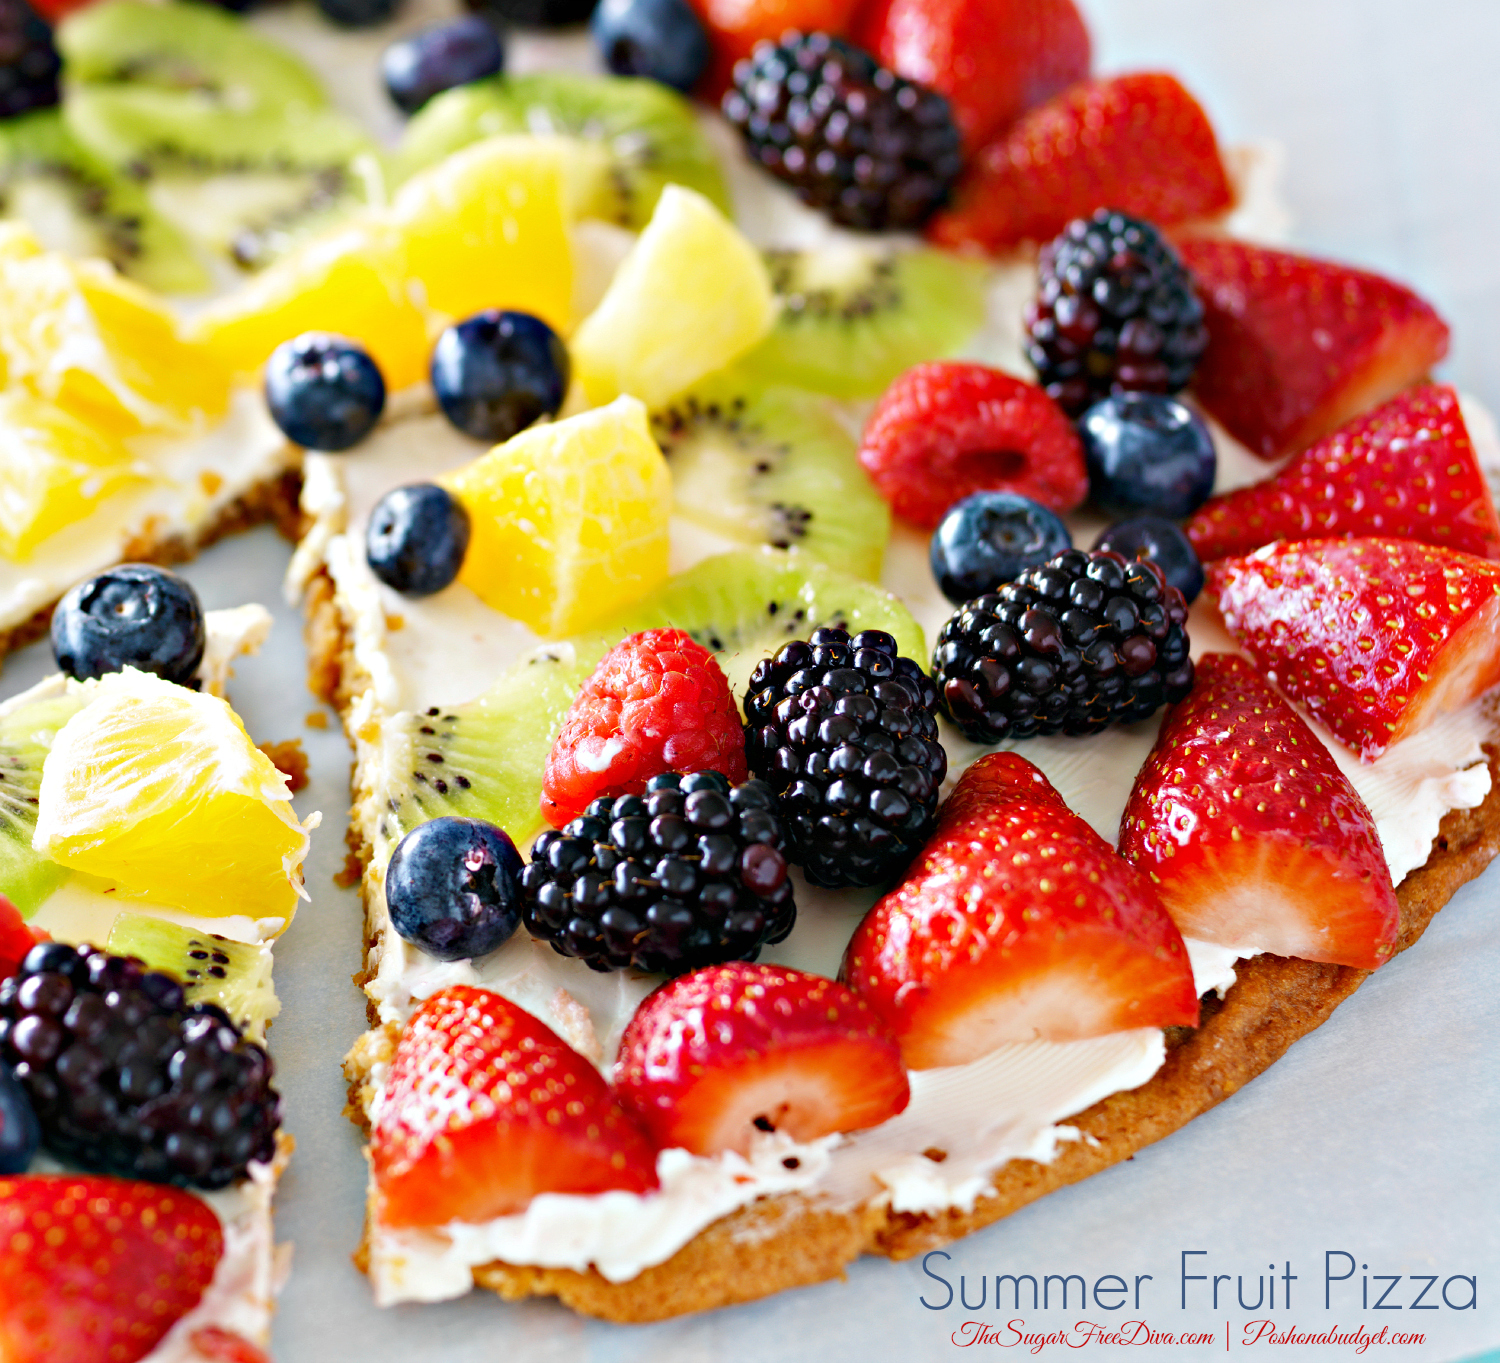 A Delicious Summer Fruit Pizza